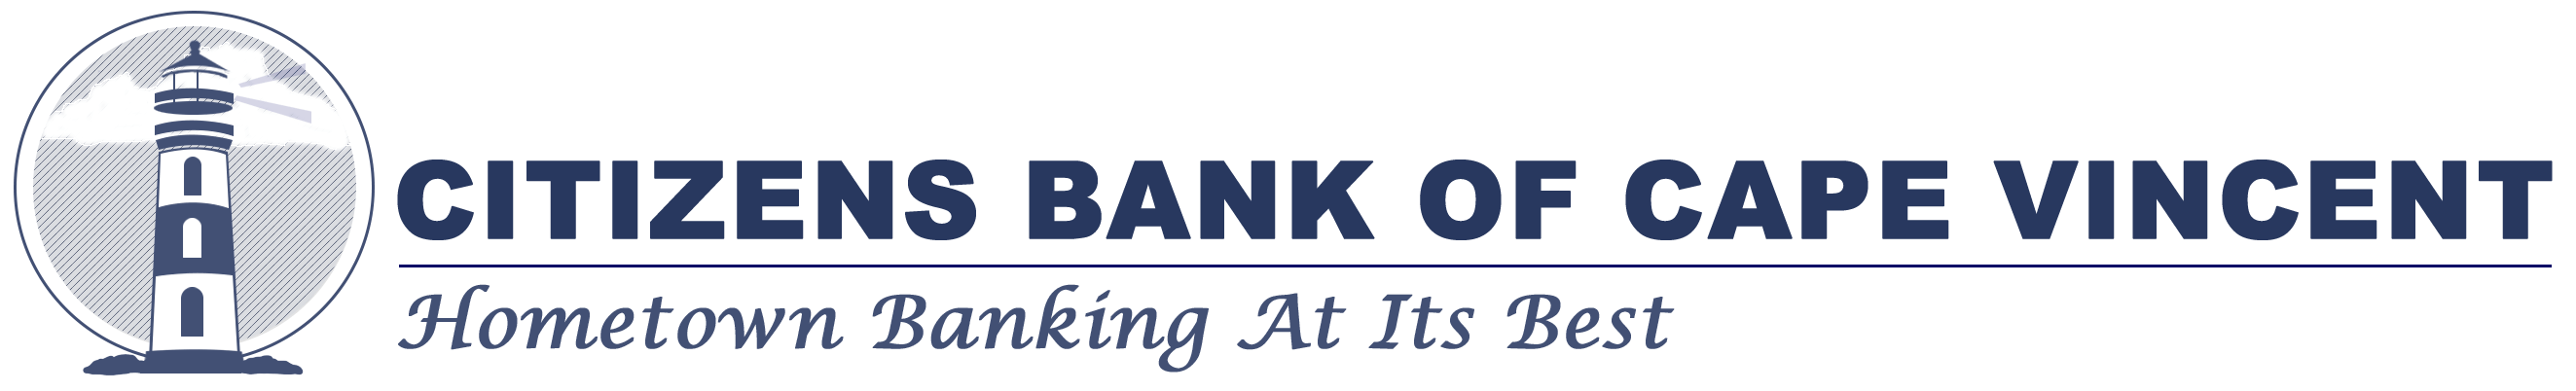 Chaumont NY Branch Location Of Citizens Bank Of Cape Vincent